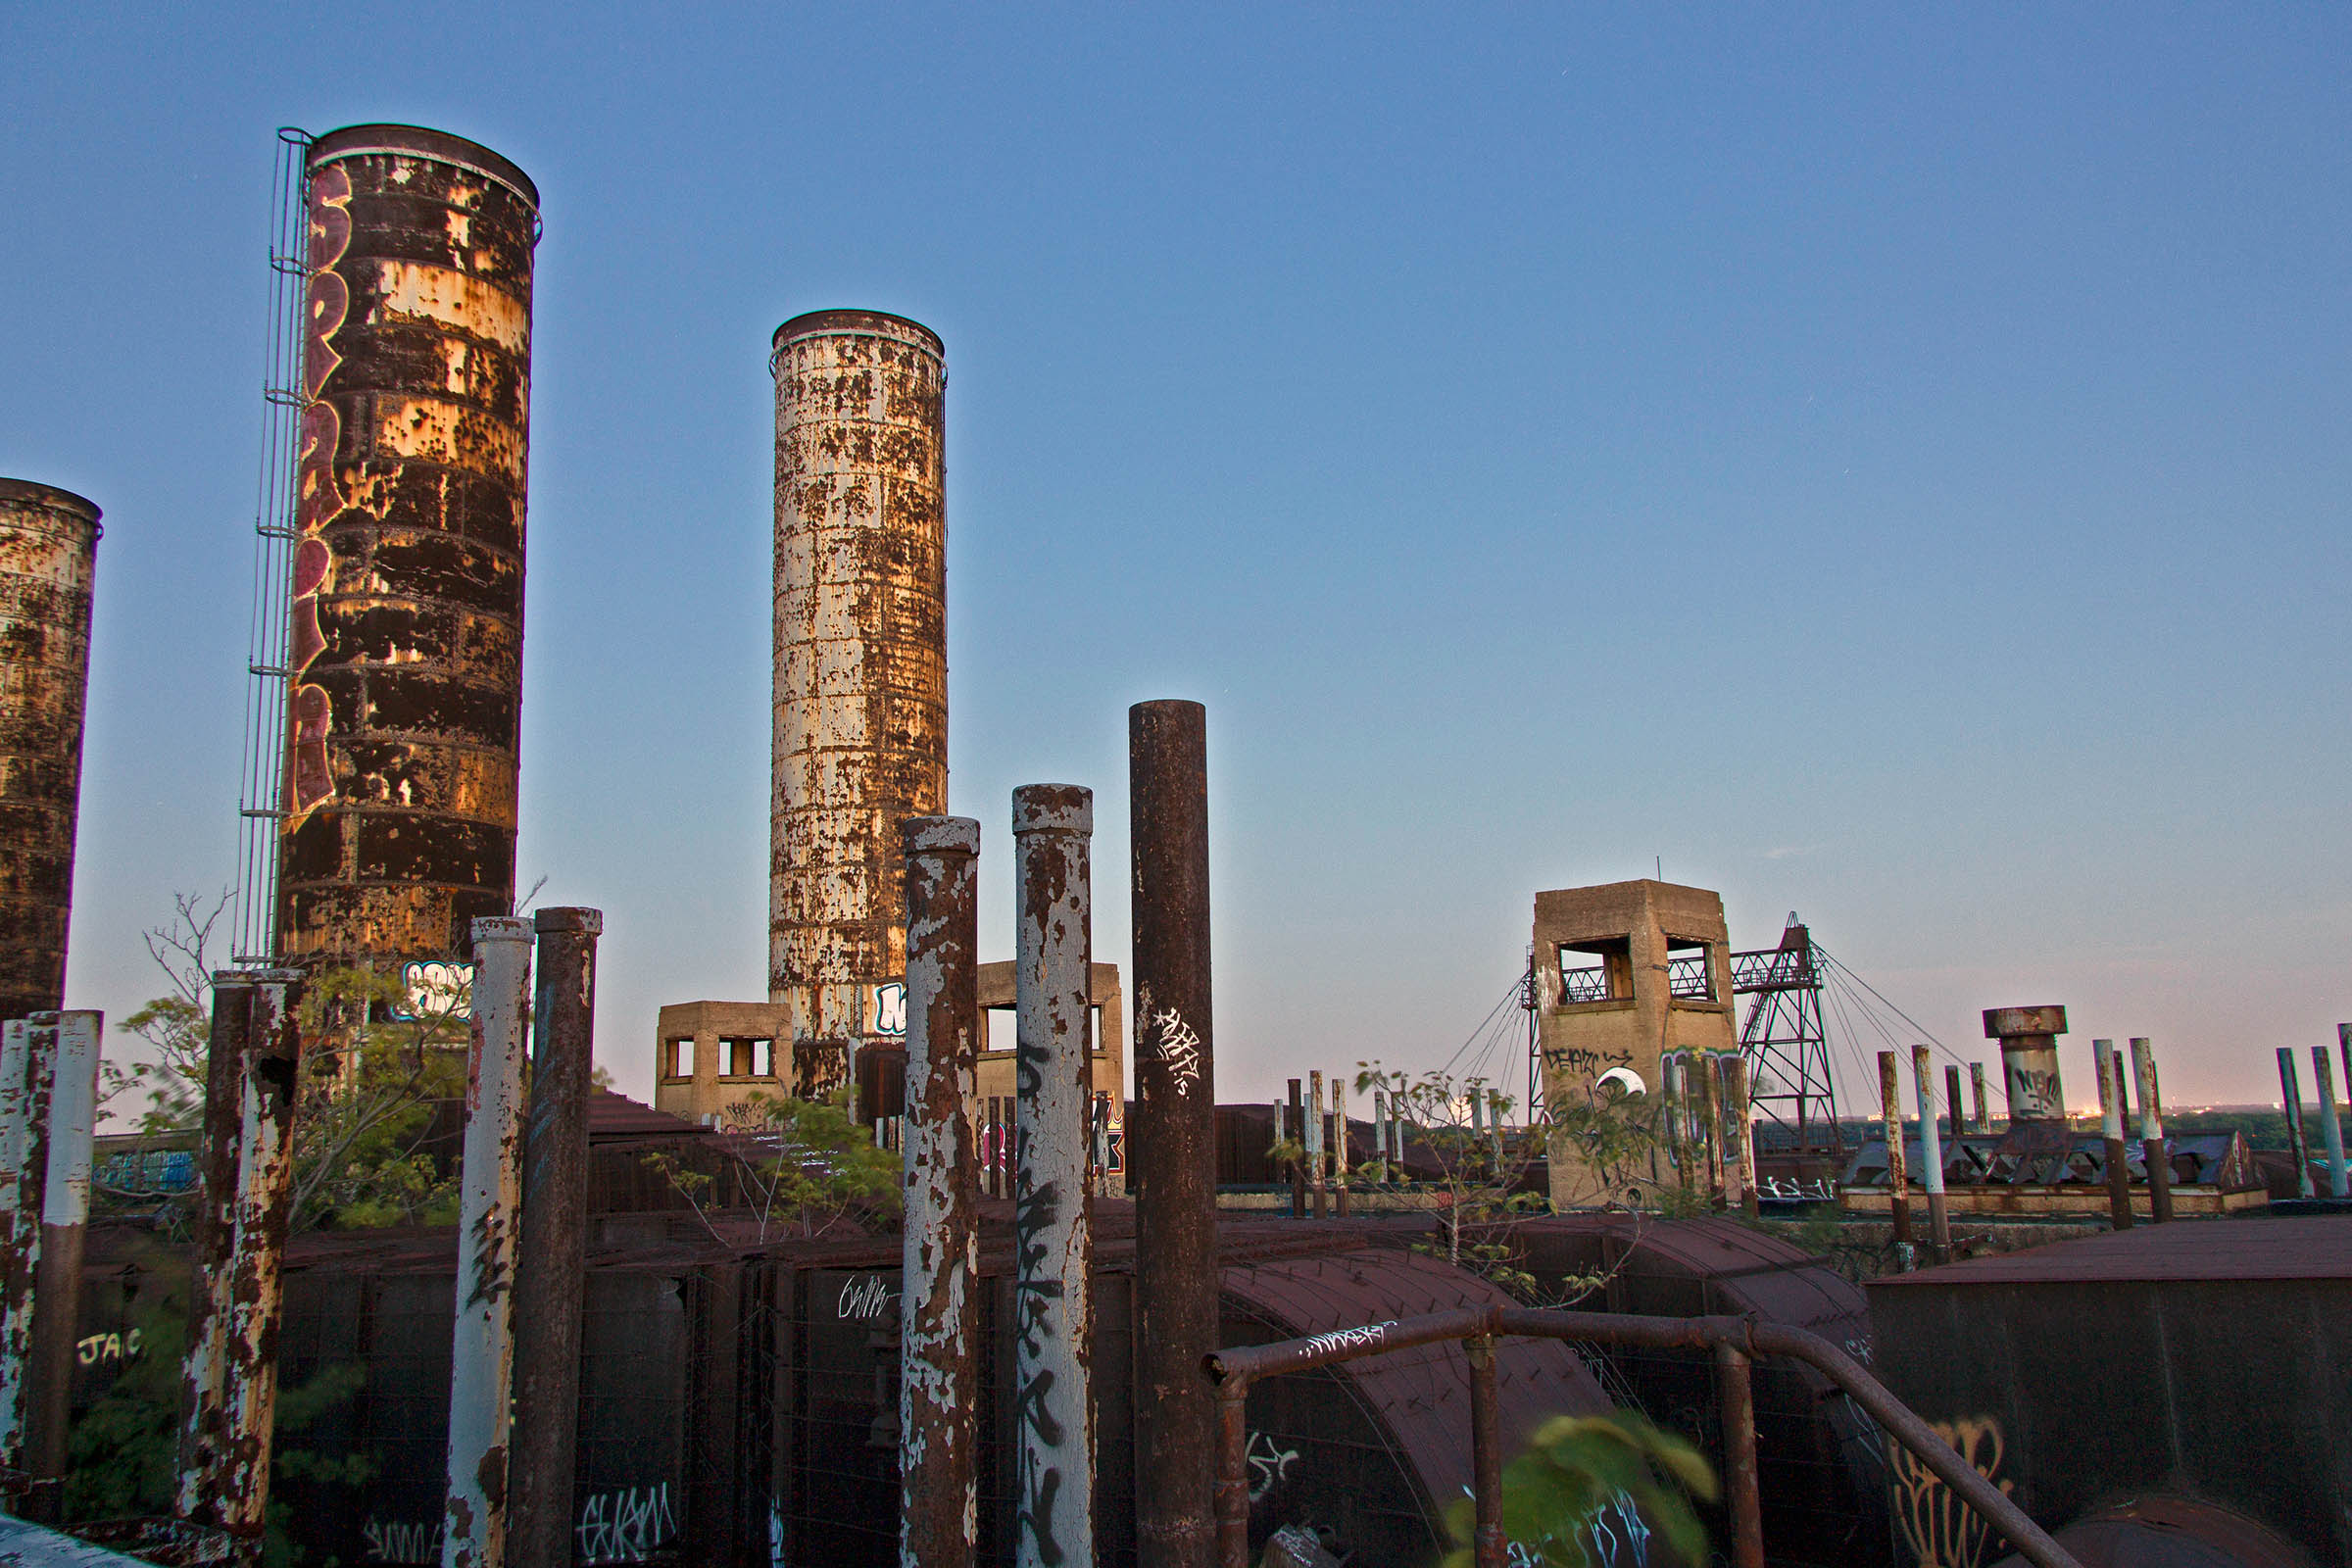 PECO Delaware Generating Station, Philadelphia, PA, USA, 2015.